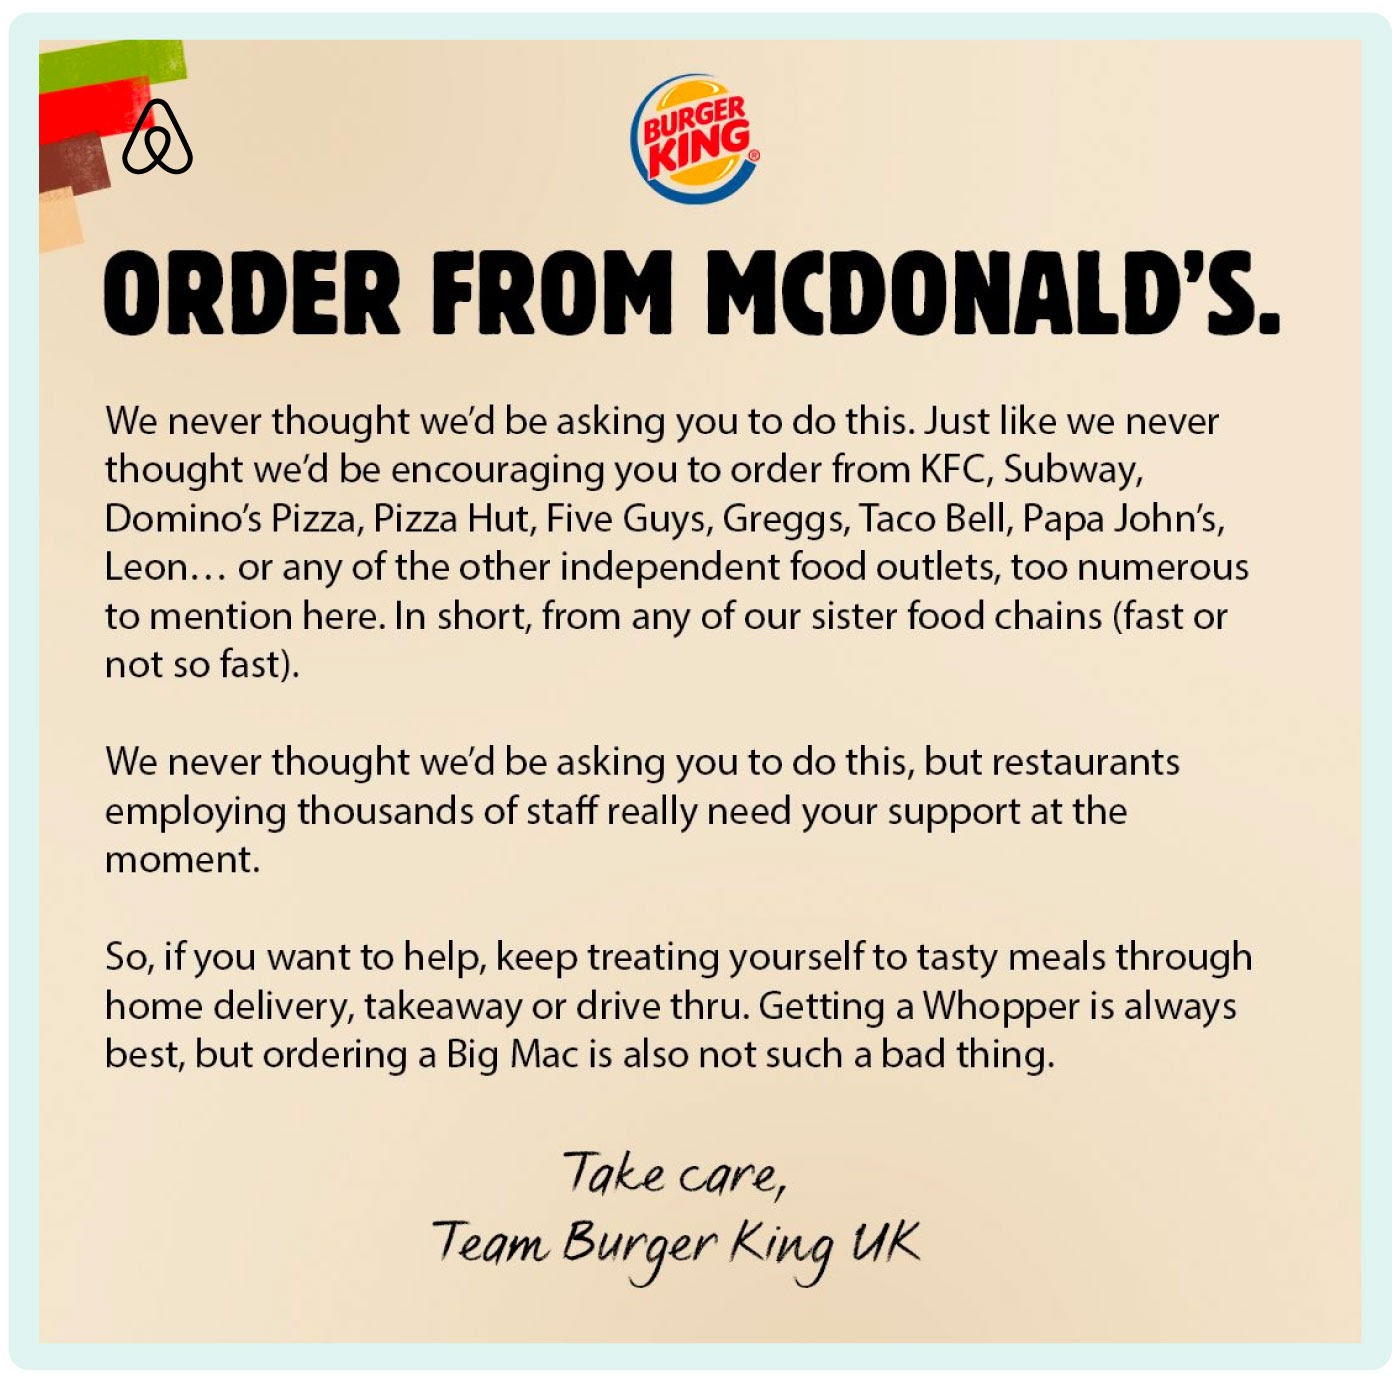 Burger King supporting McDonald's and other food outlets during the pandemic